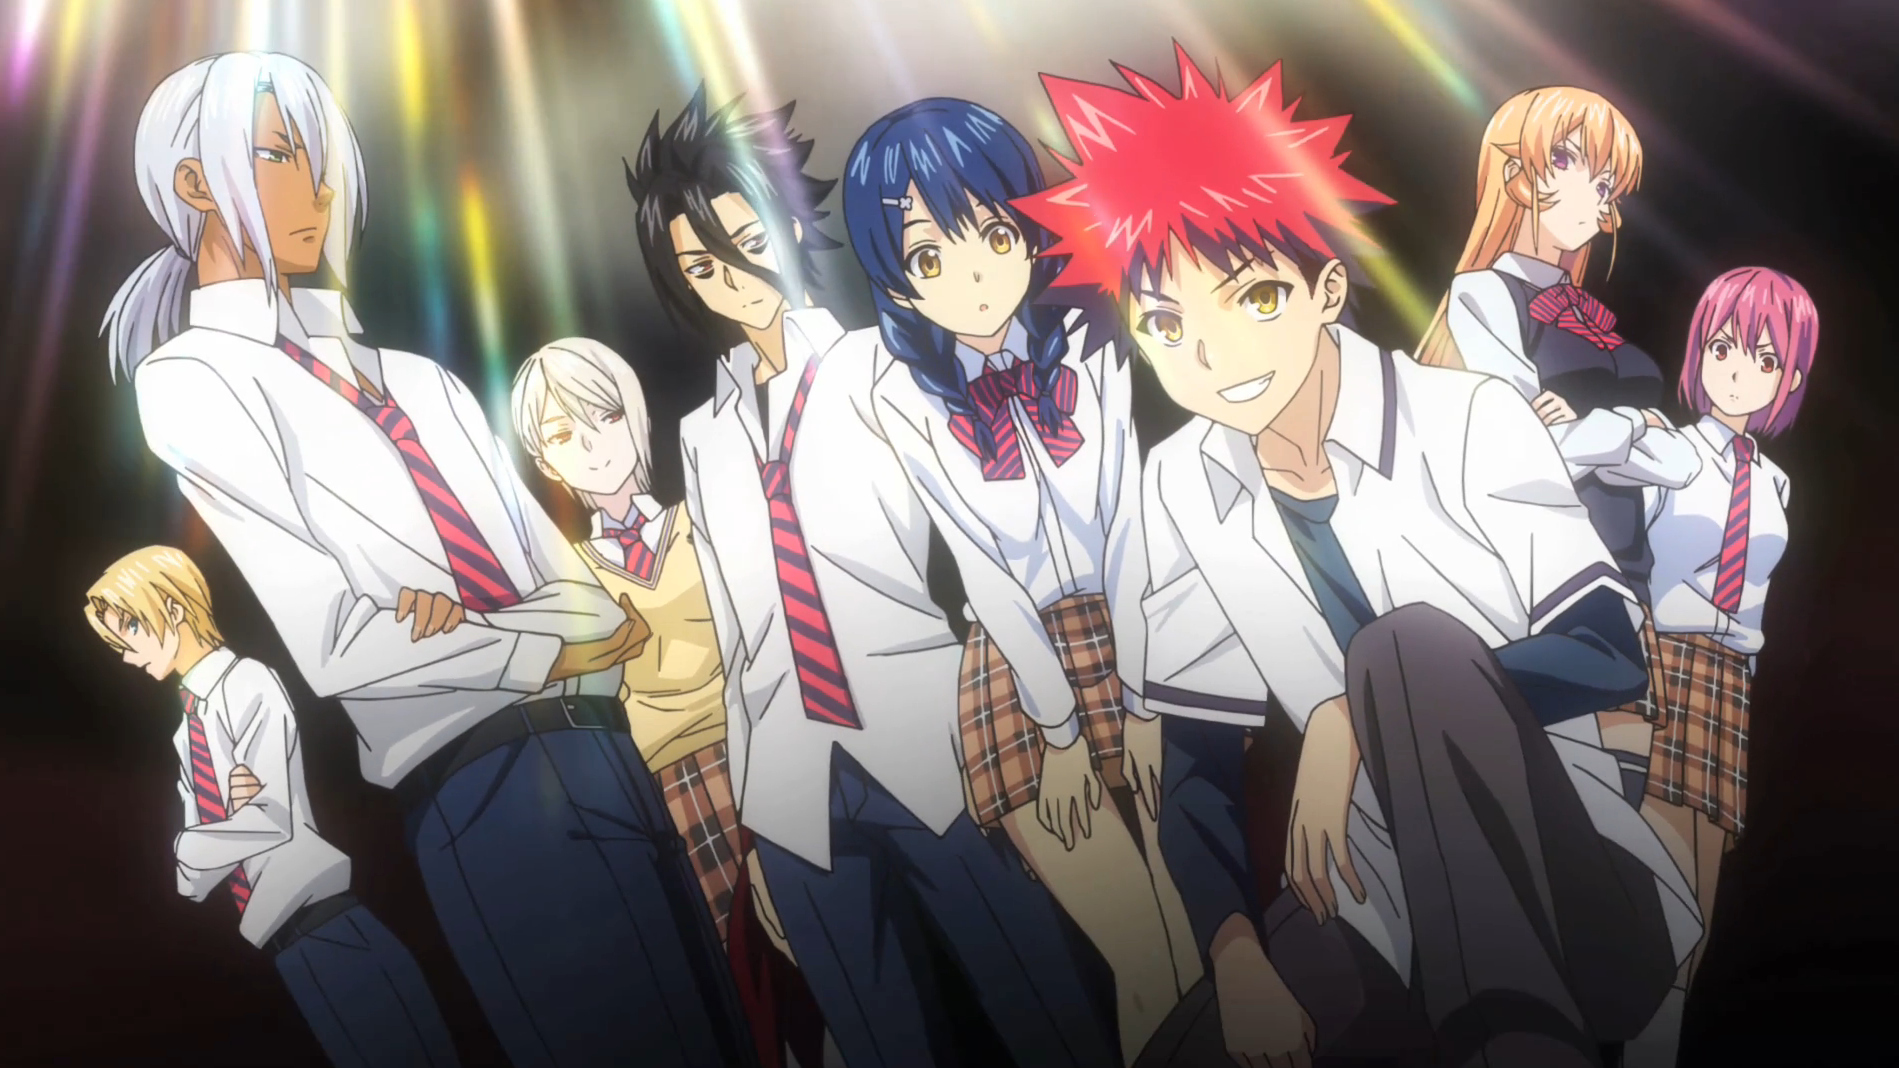 Food Wars The Third Plate Wallpapers High Quality ...